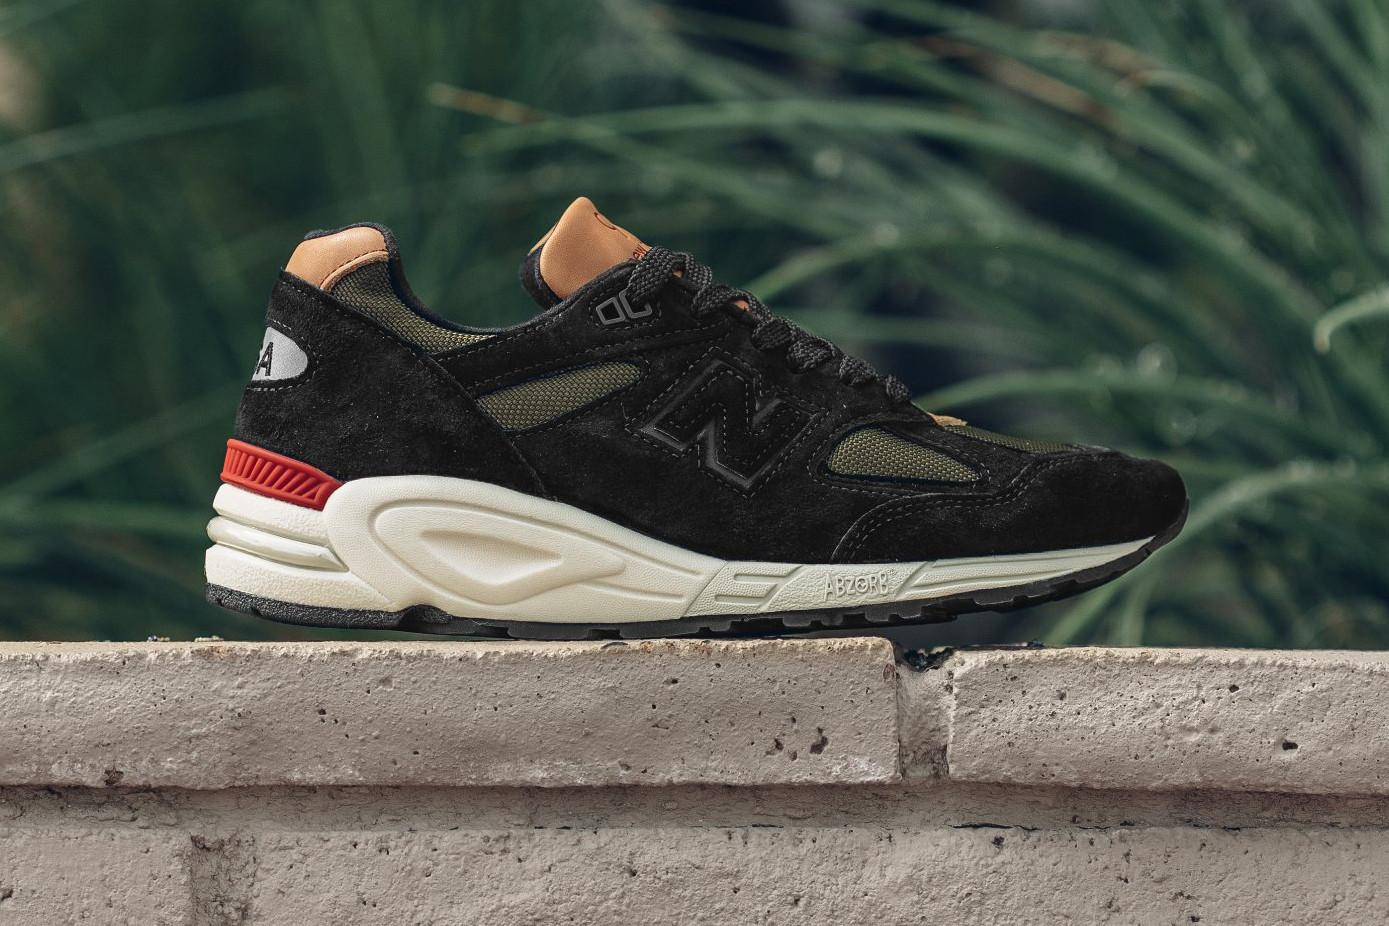 New Balance 990 Made in USA in Black